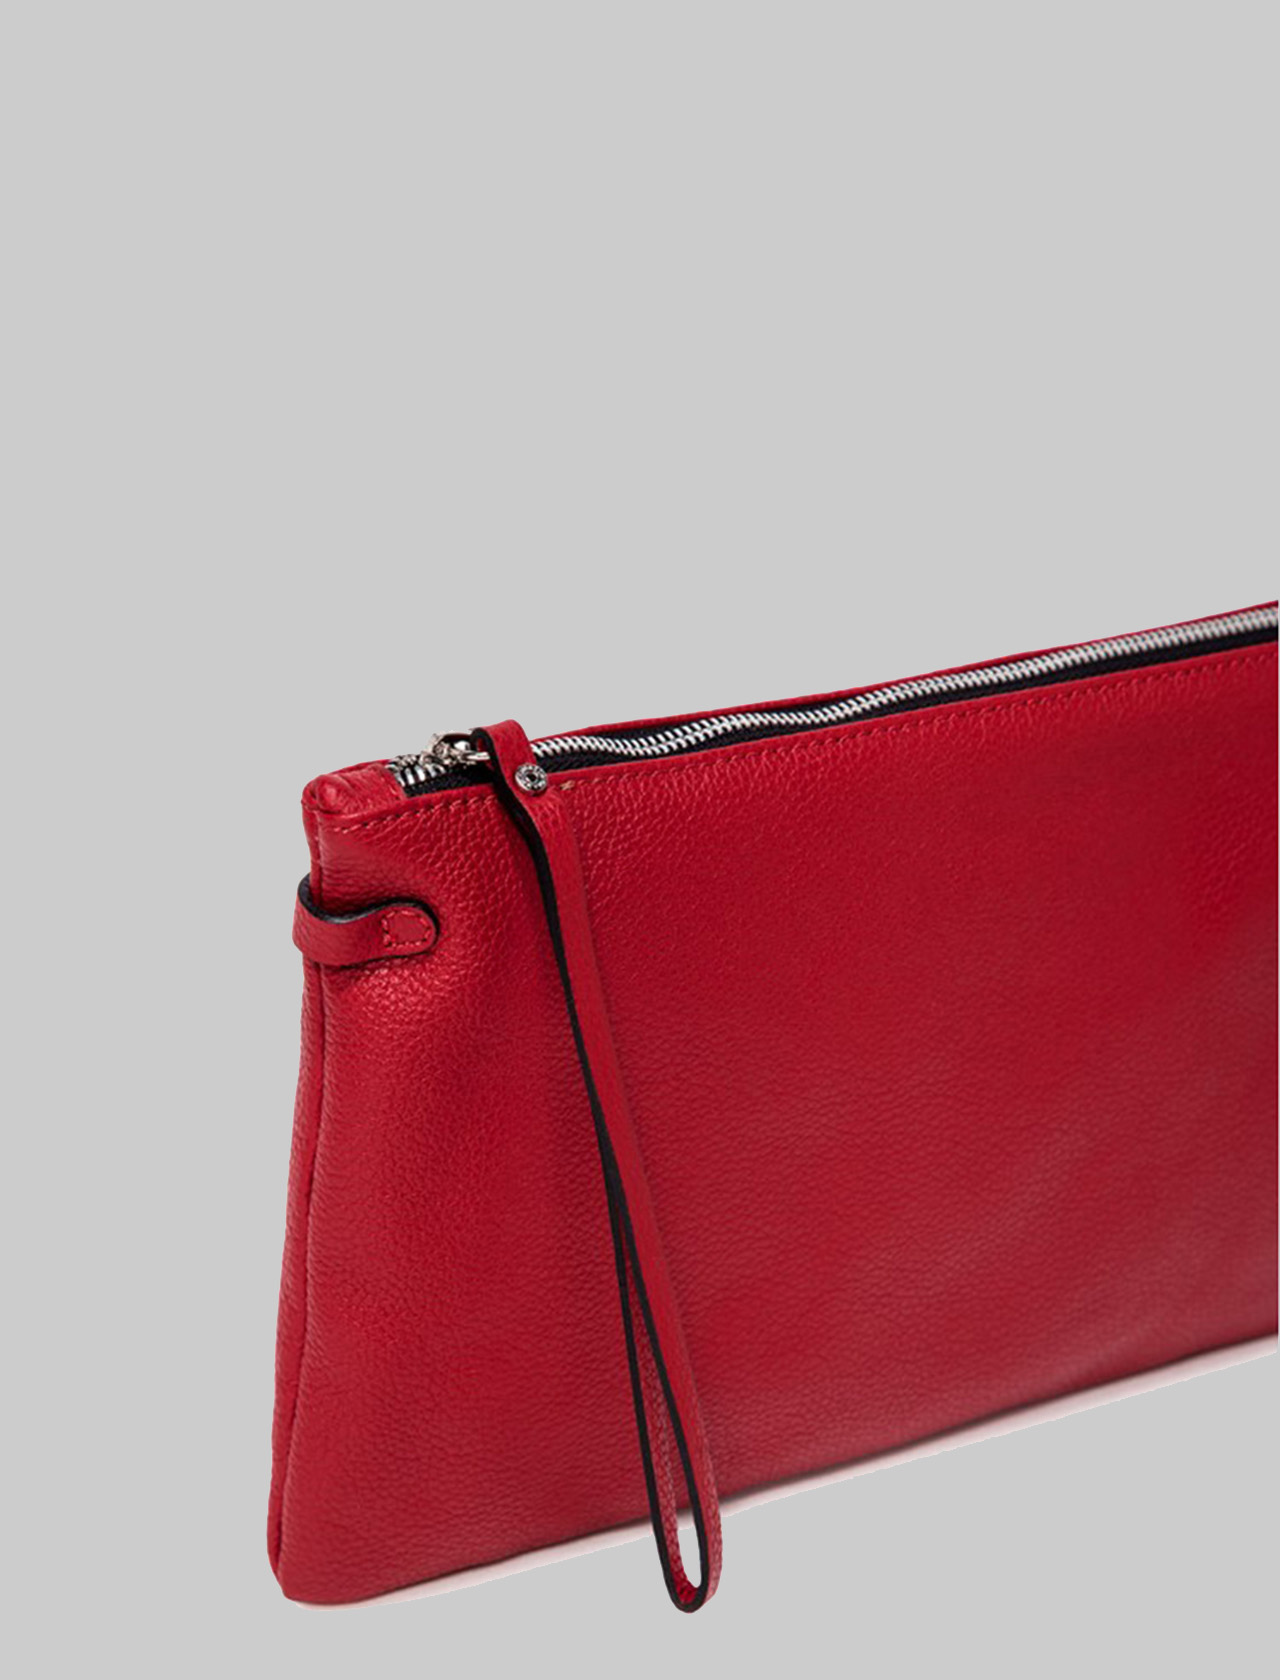 Hermy large women's clutch in red leather with handle and adjustable and removable shoulder strap Gianni Chiarini | Bags and backpacks | BS369511707